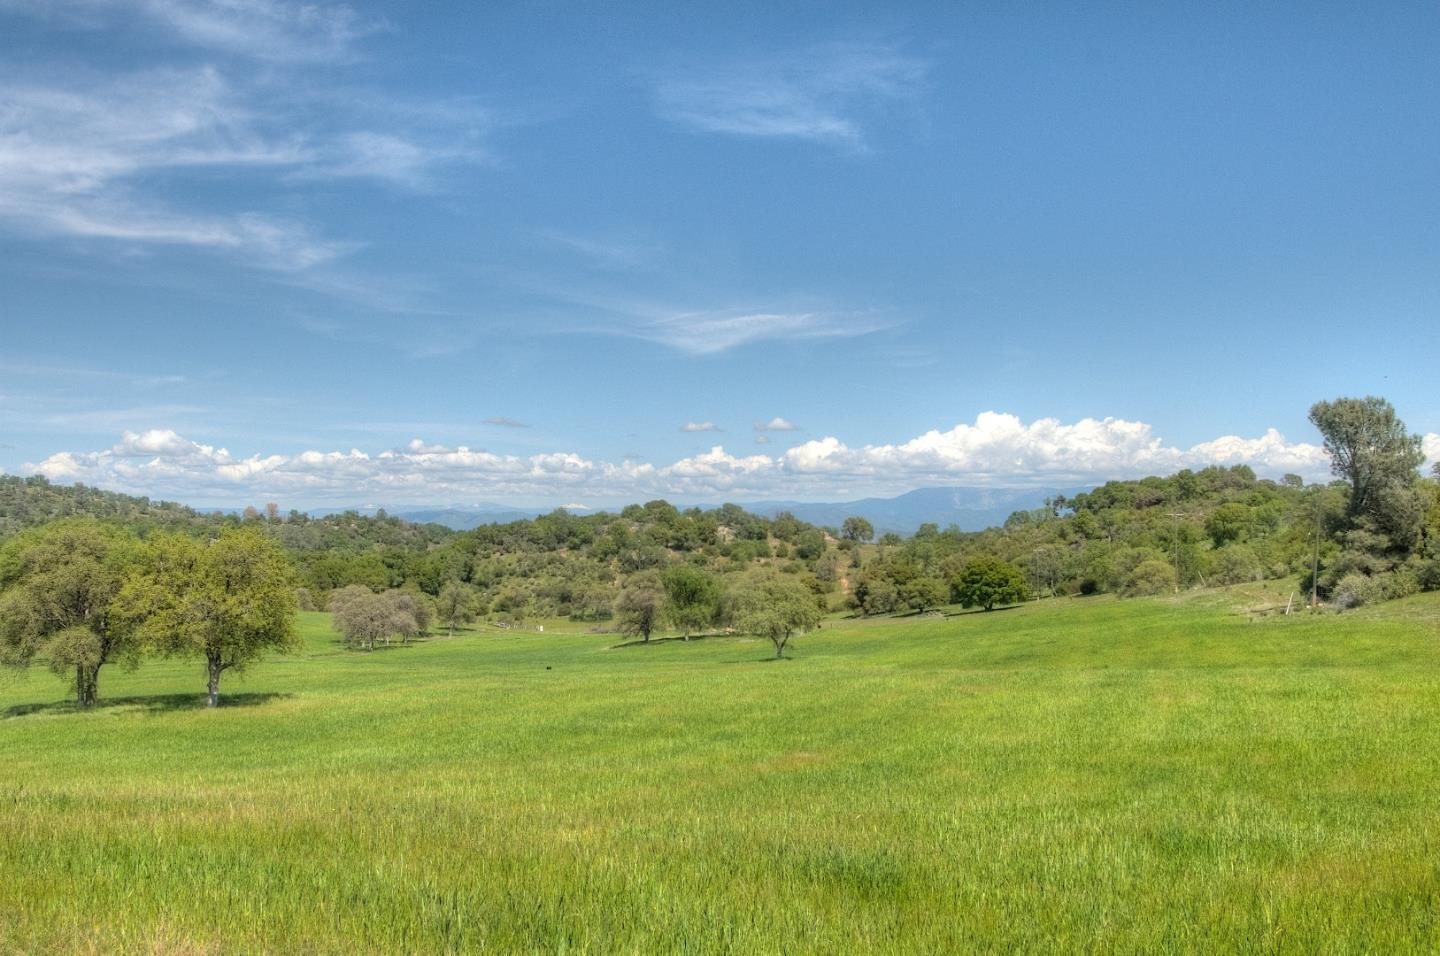 Additional photo for property listing at 4164 Guadalupe Fire Road  Mariposa, California 95338 United States